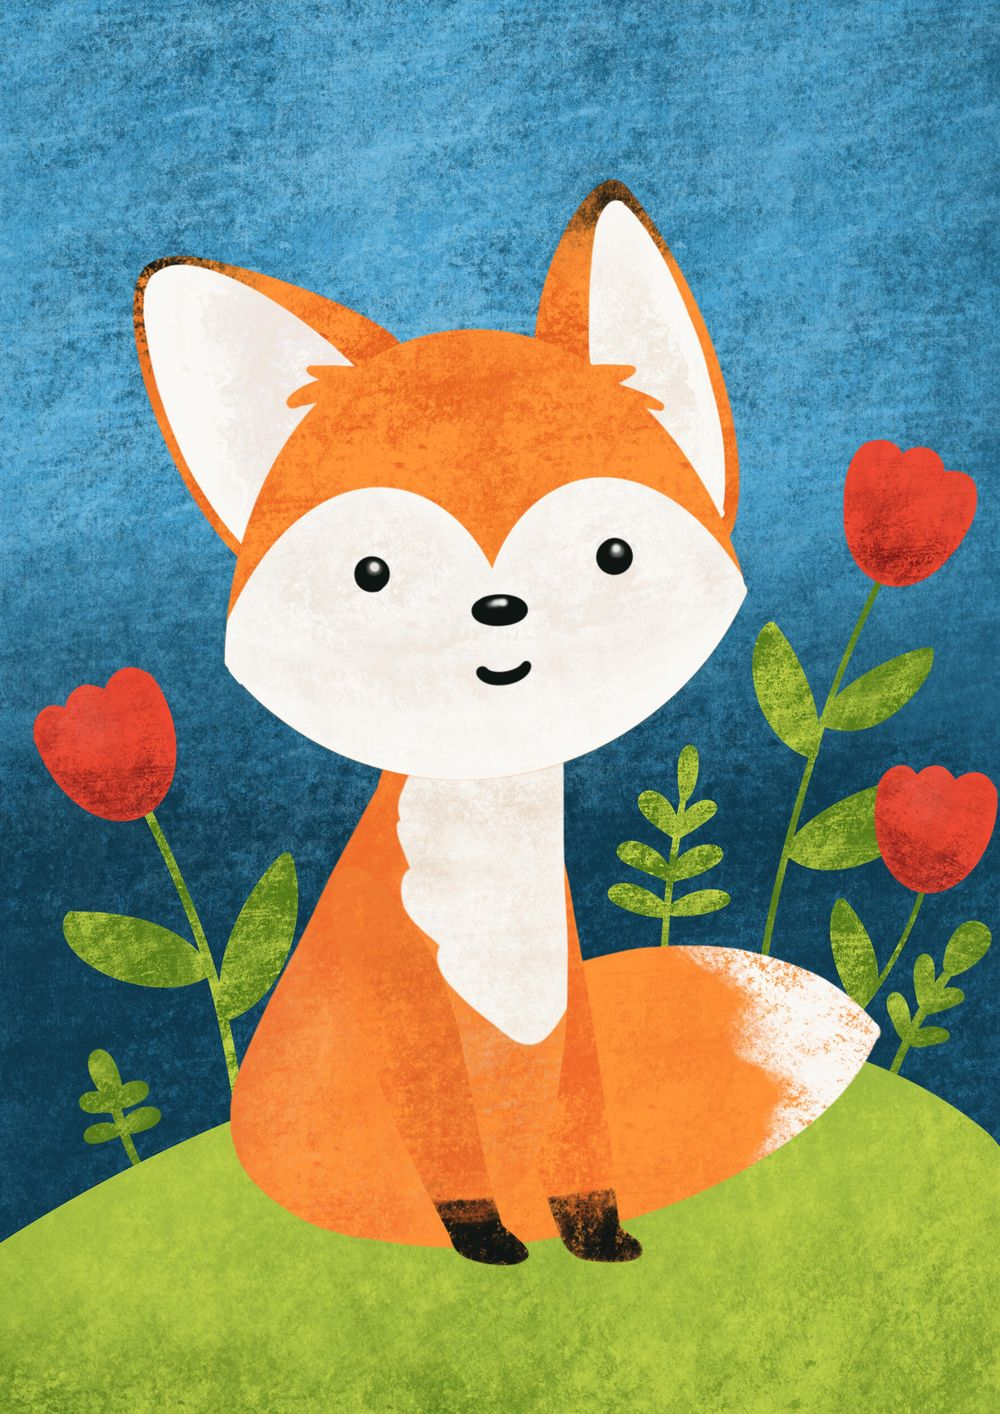 Fox - image 3 - student project